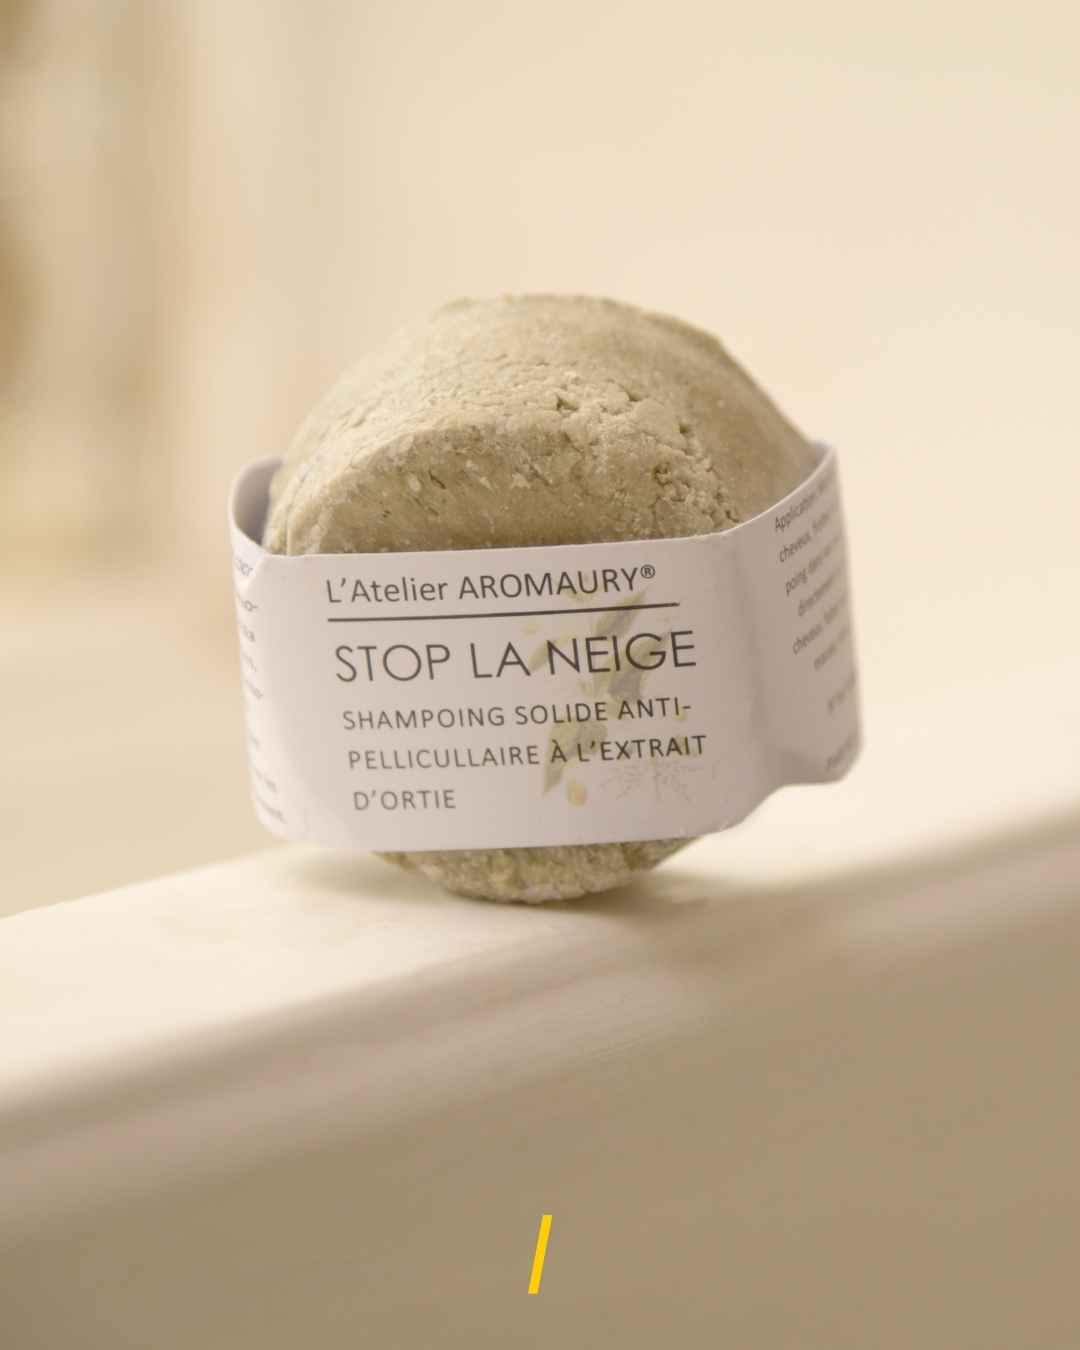 Shampoing solide antipelliculaire